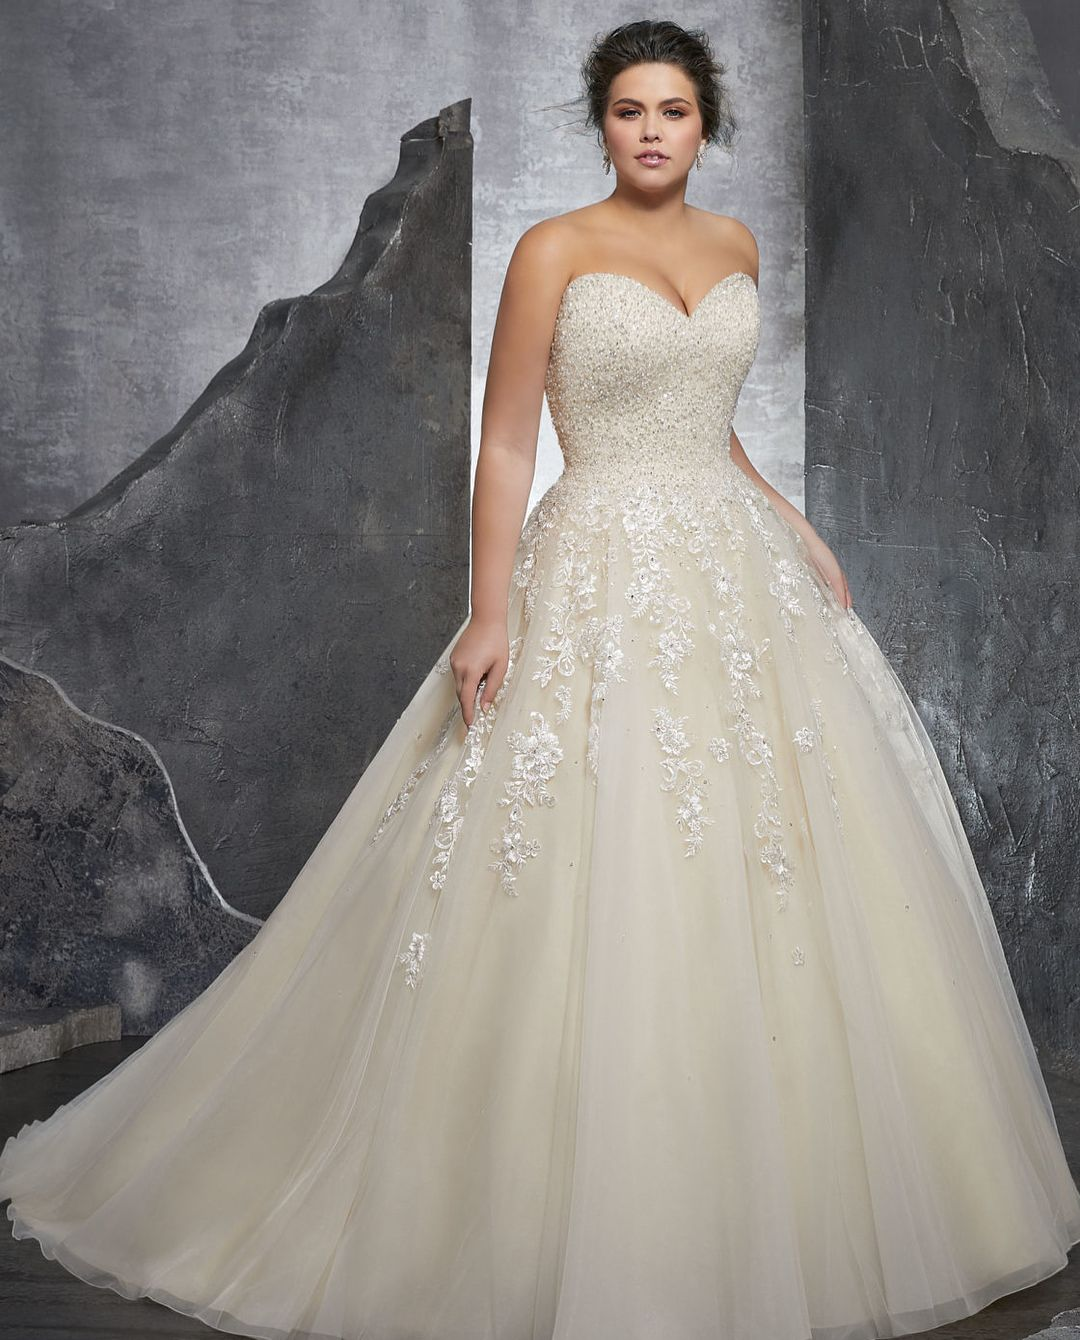 Mori Lee 2019 Wedding Dresses: Pin By Perfect Princess Bridal On Julietta By Mori Lee In